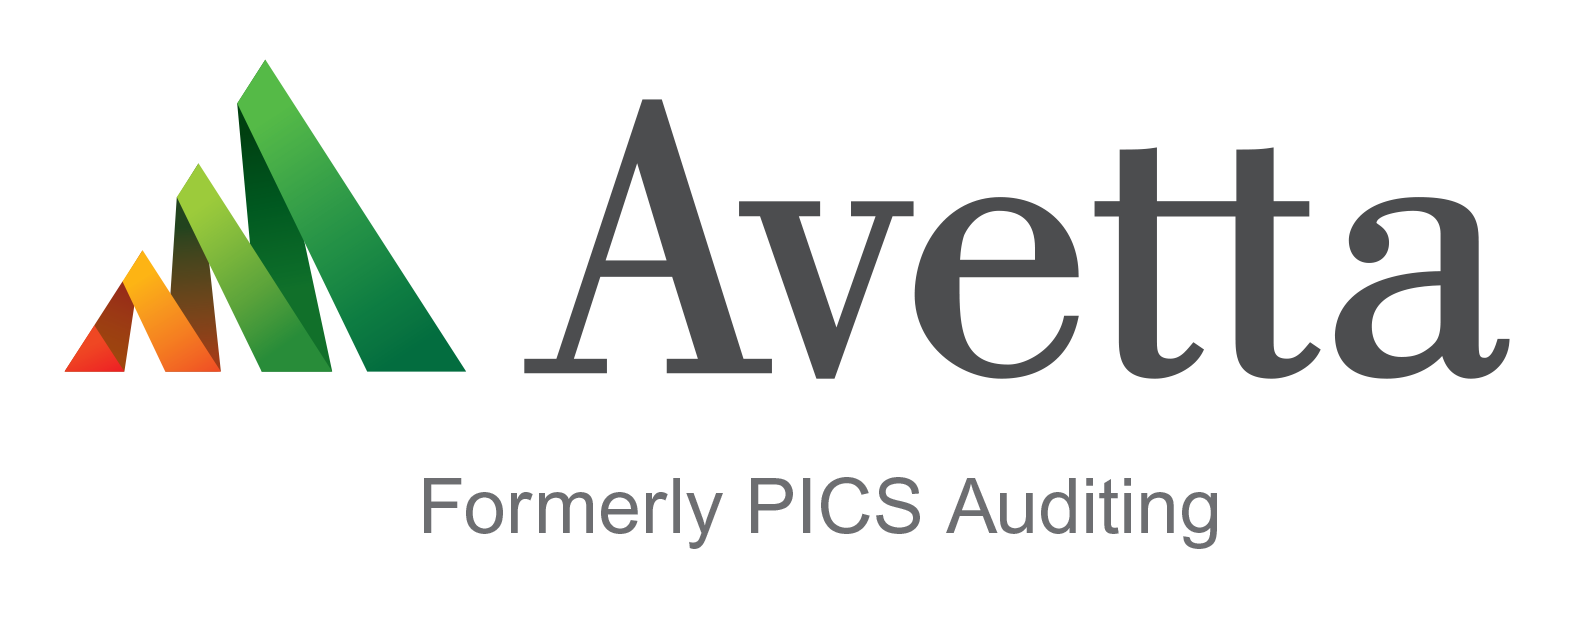 Power Products & Solutions partners with Avetta